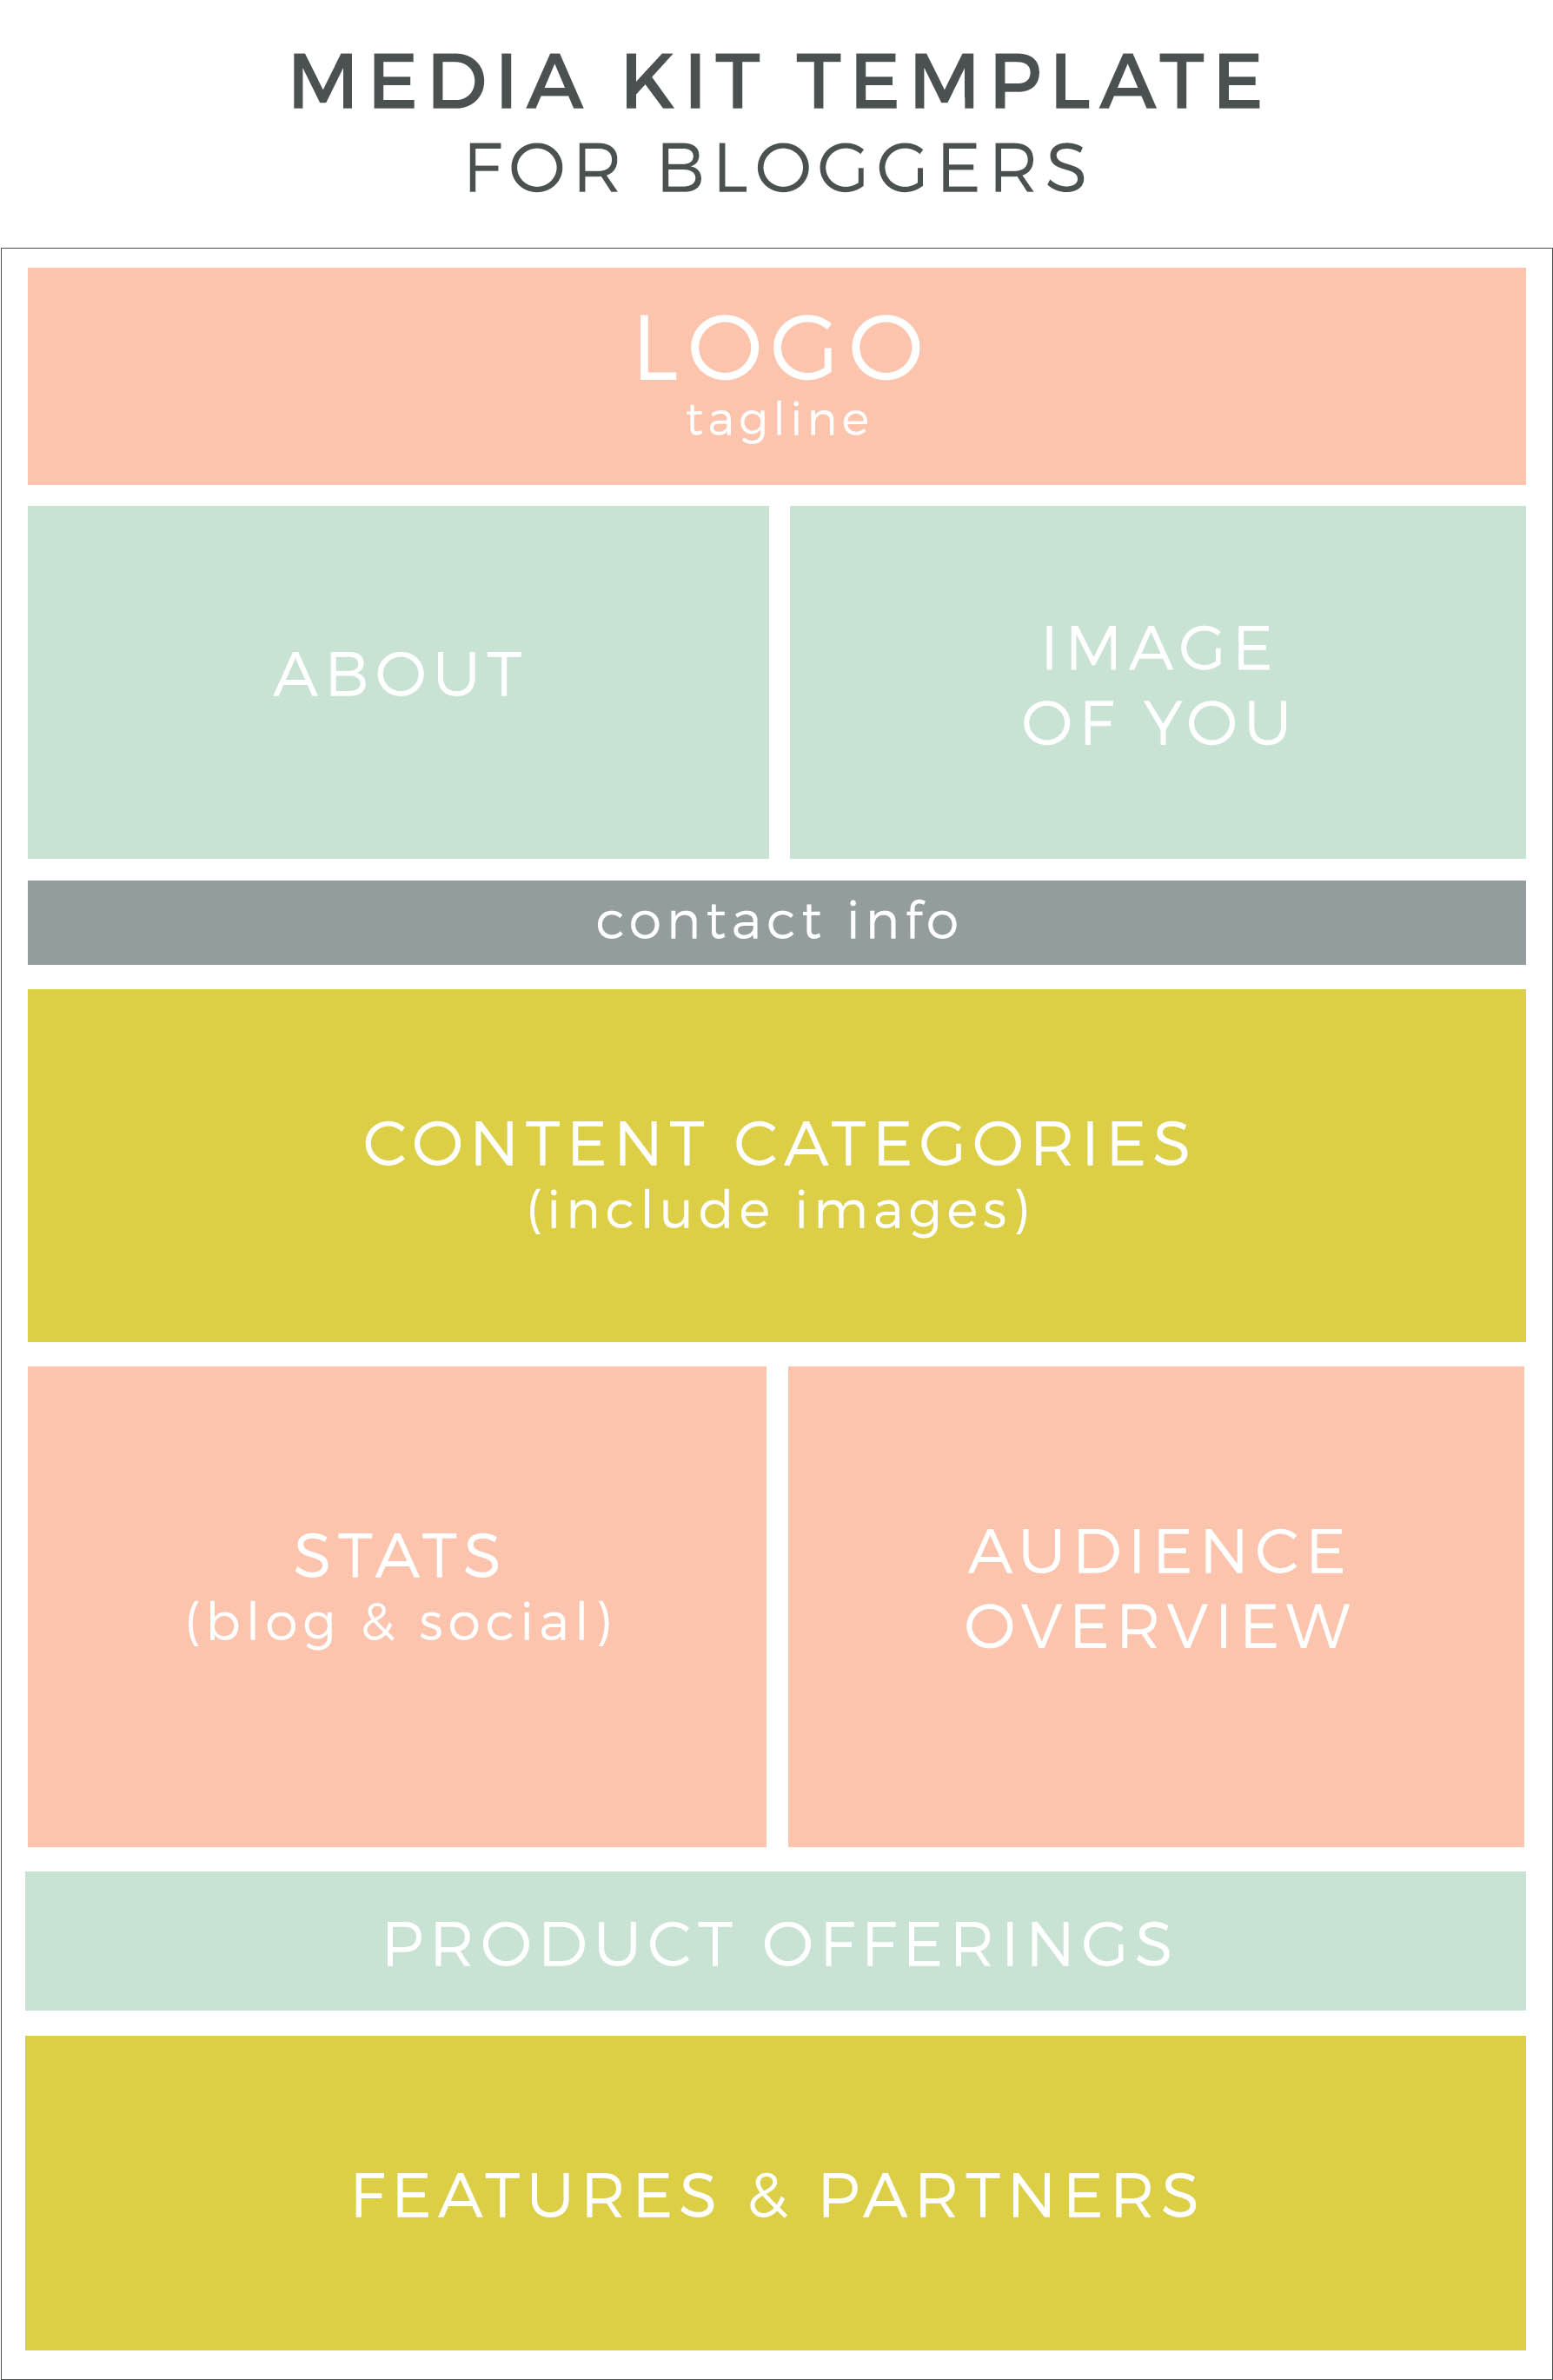 press pack template - blogging 101 how to create a media kit for your blog